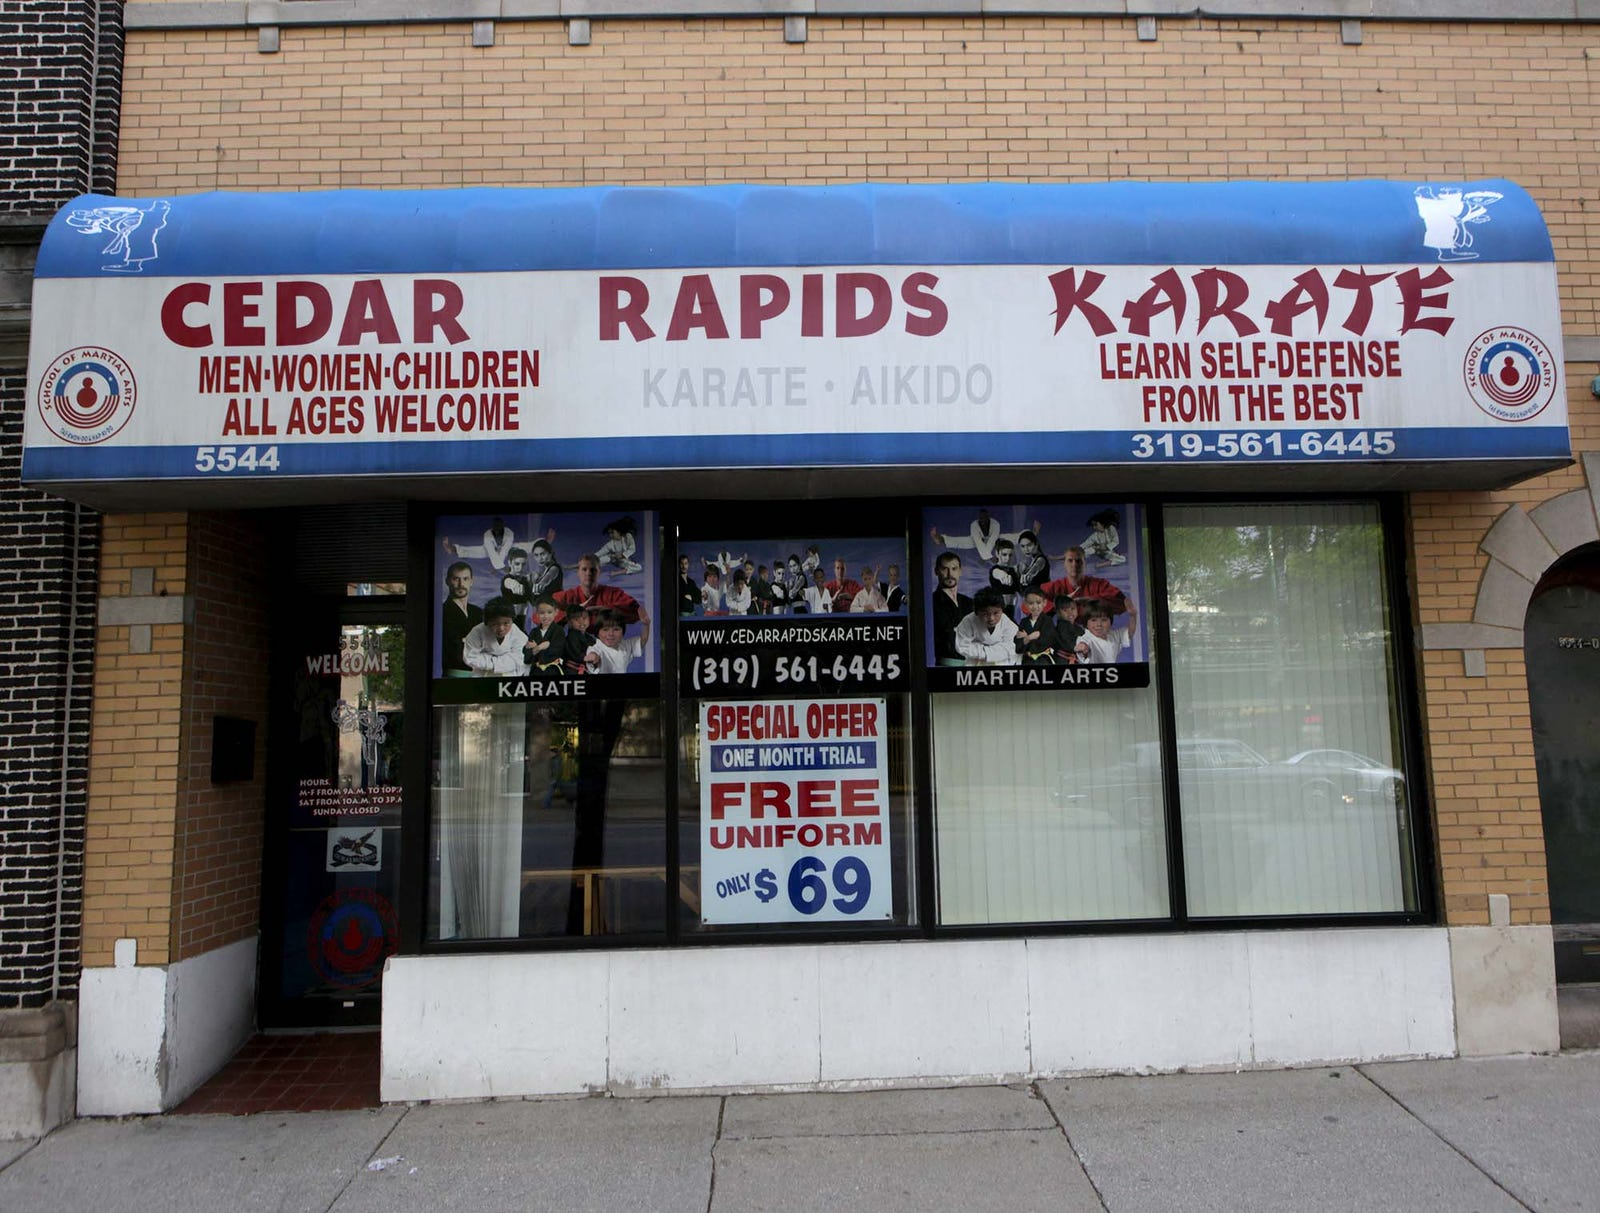 Karate Studio Hoping To Get Local Phone Number That Spells Out Word 'Kick' Or 'Chop'